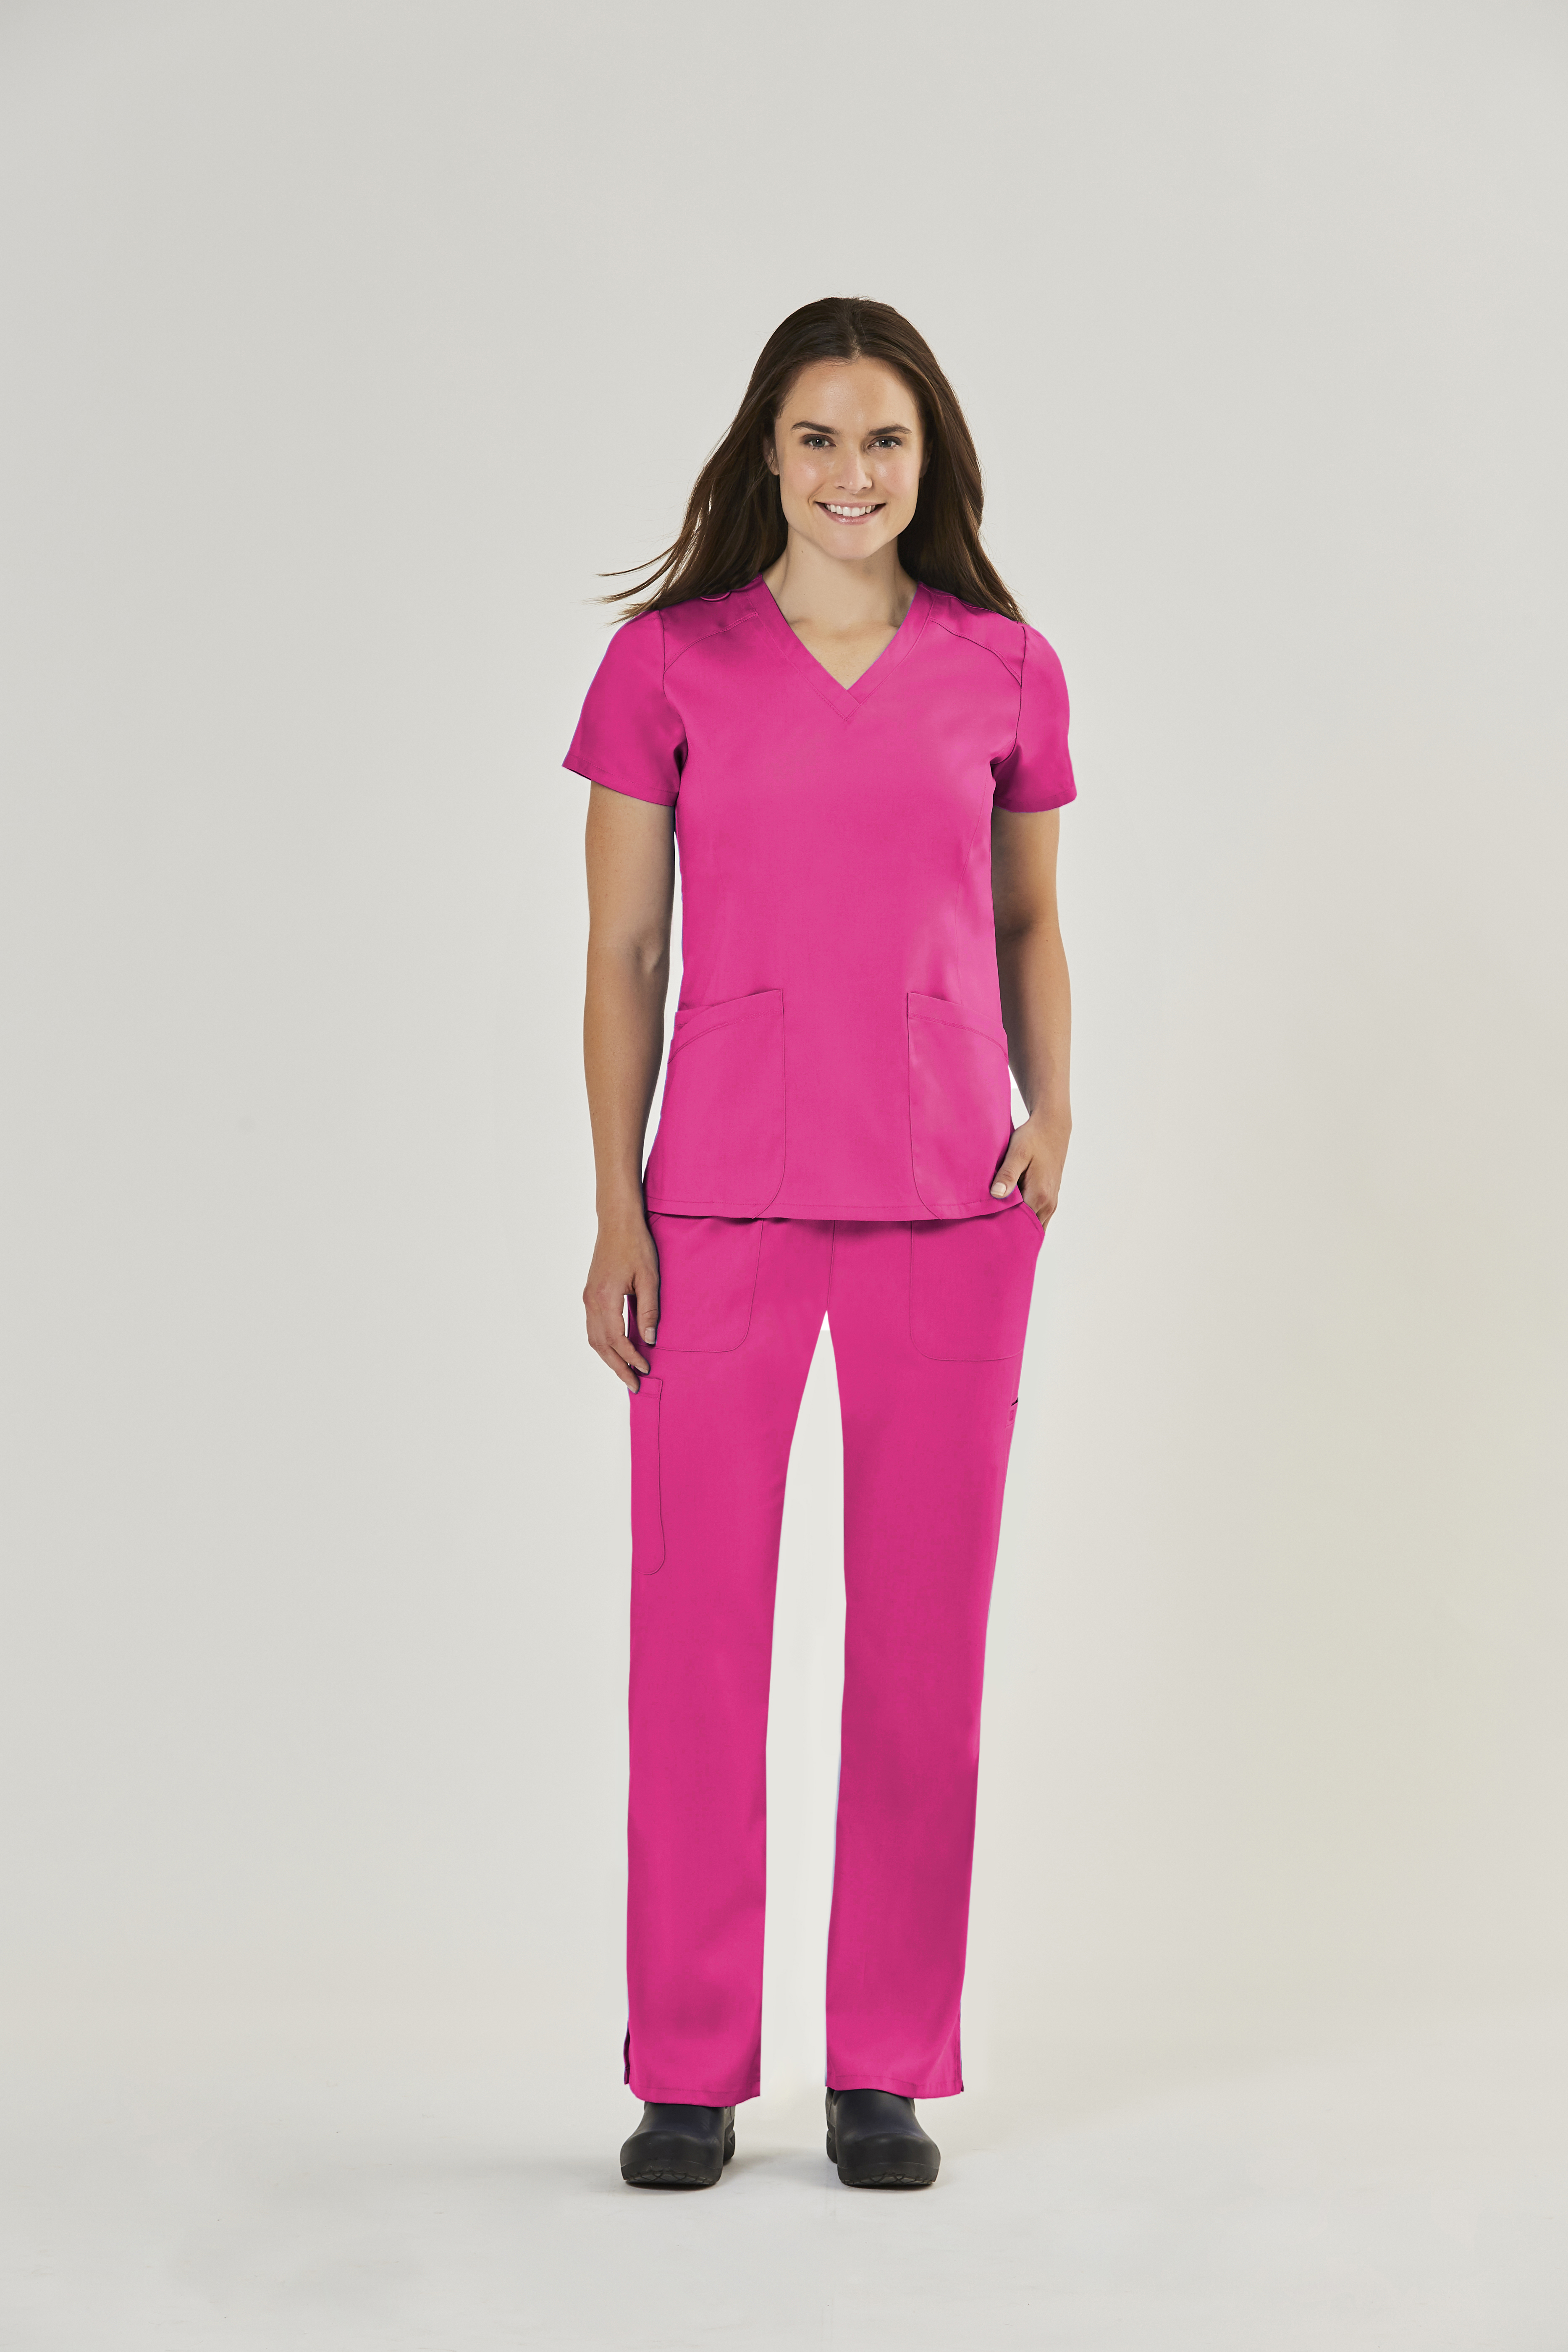 IRG EDGE Women's Curved V Neck Top-Raley Scrubs